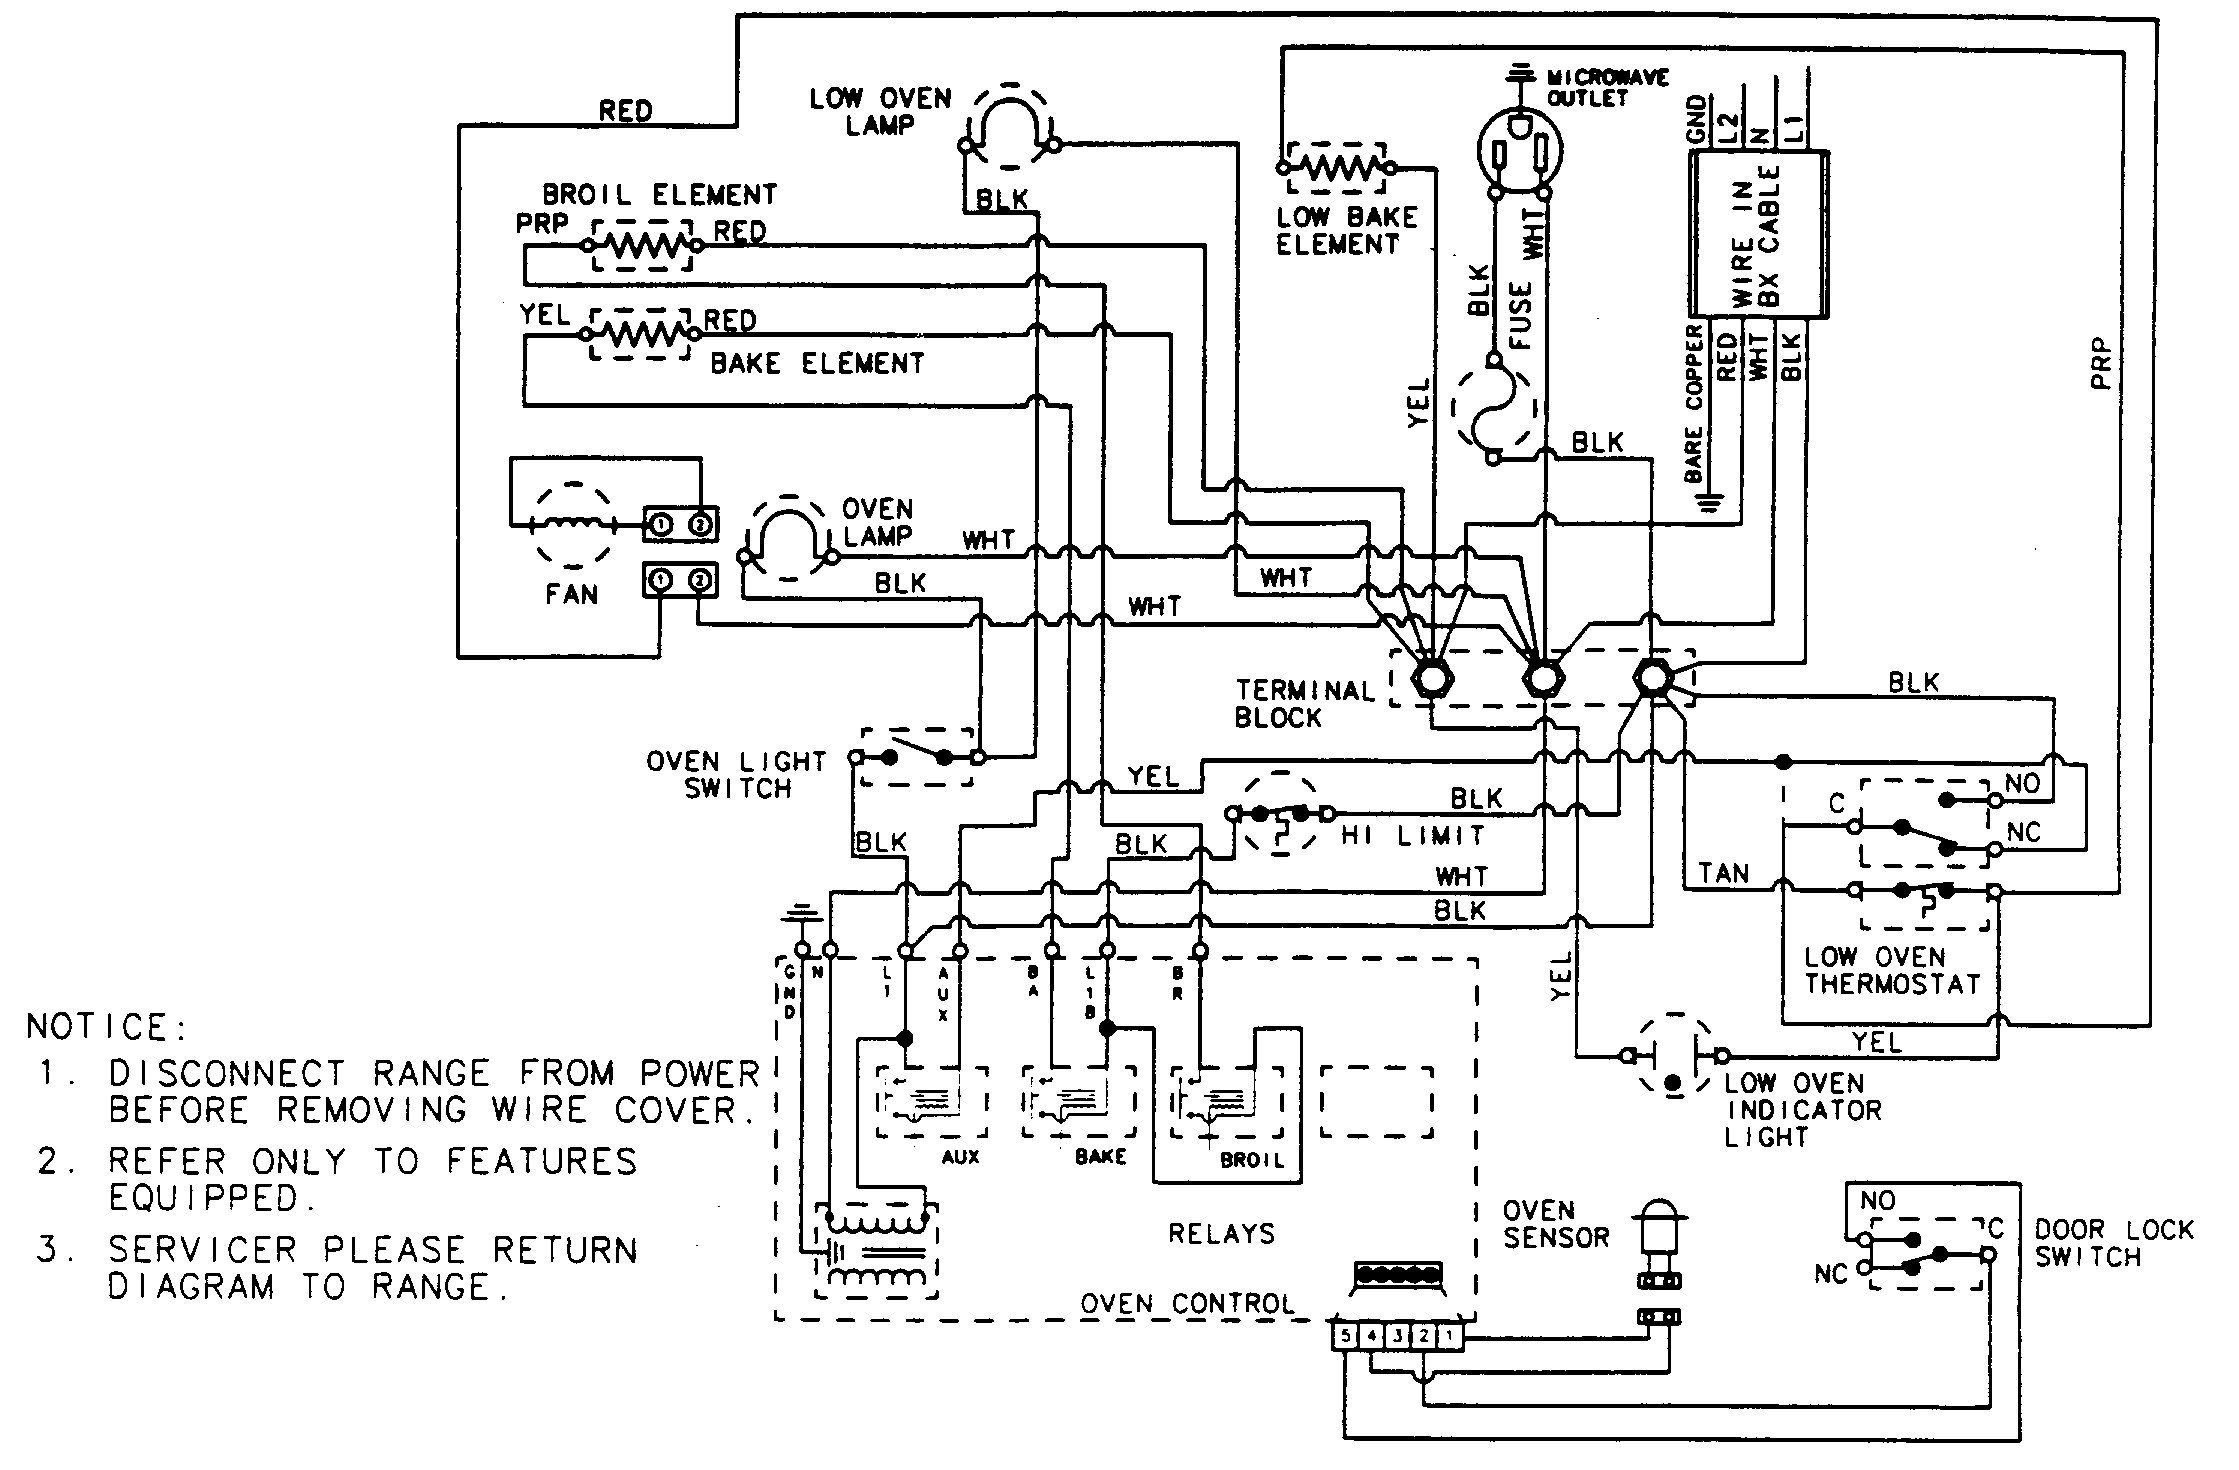 Electric Oven Thermostat Wiring Diagram from i0.wp.com